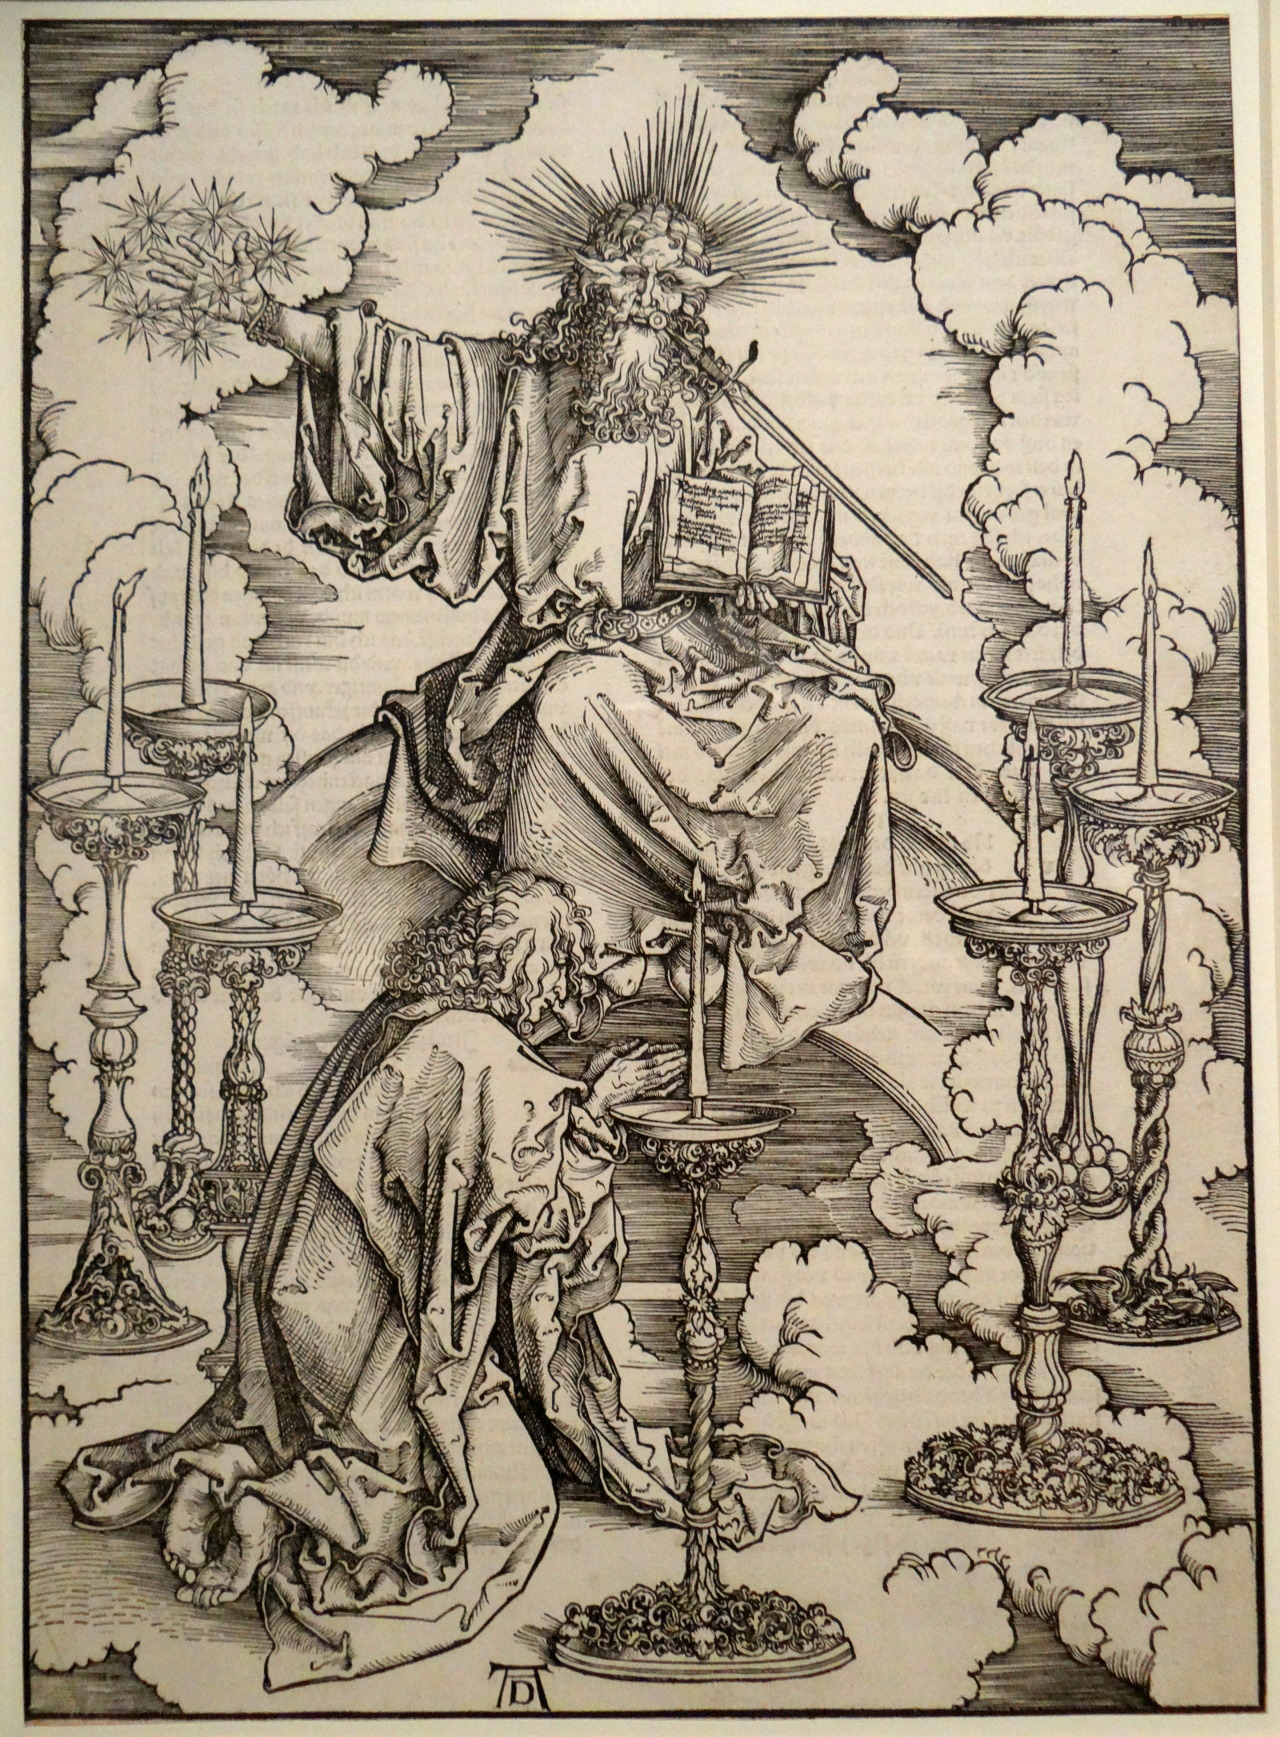 signorcasaubon:  Albrecht Durer - The Vision of the Seven Candlesticks; Queen's Gallery, Buckingham Palace, Westminster, England; 15th century